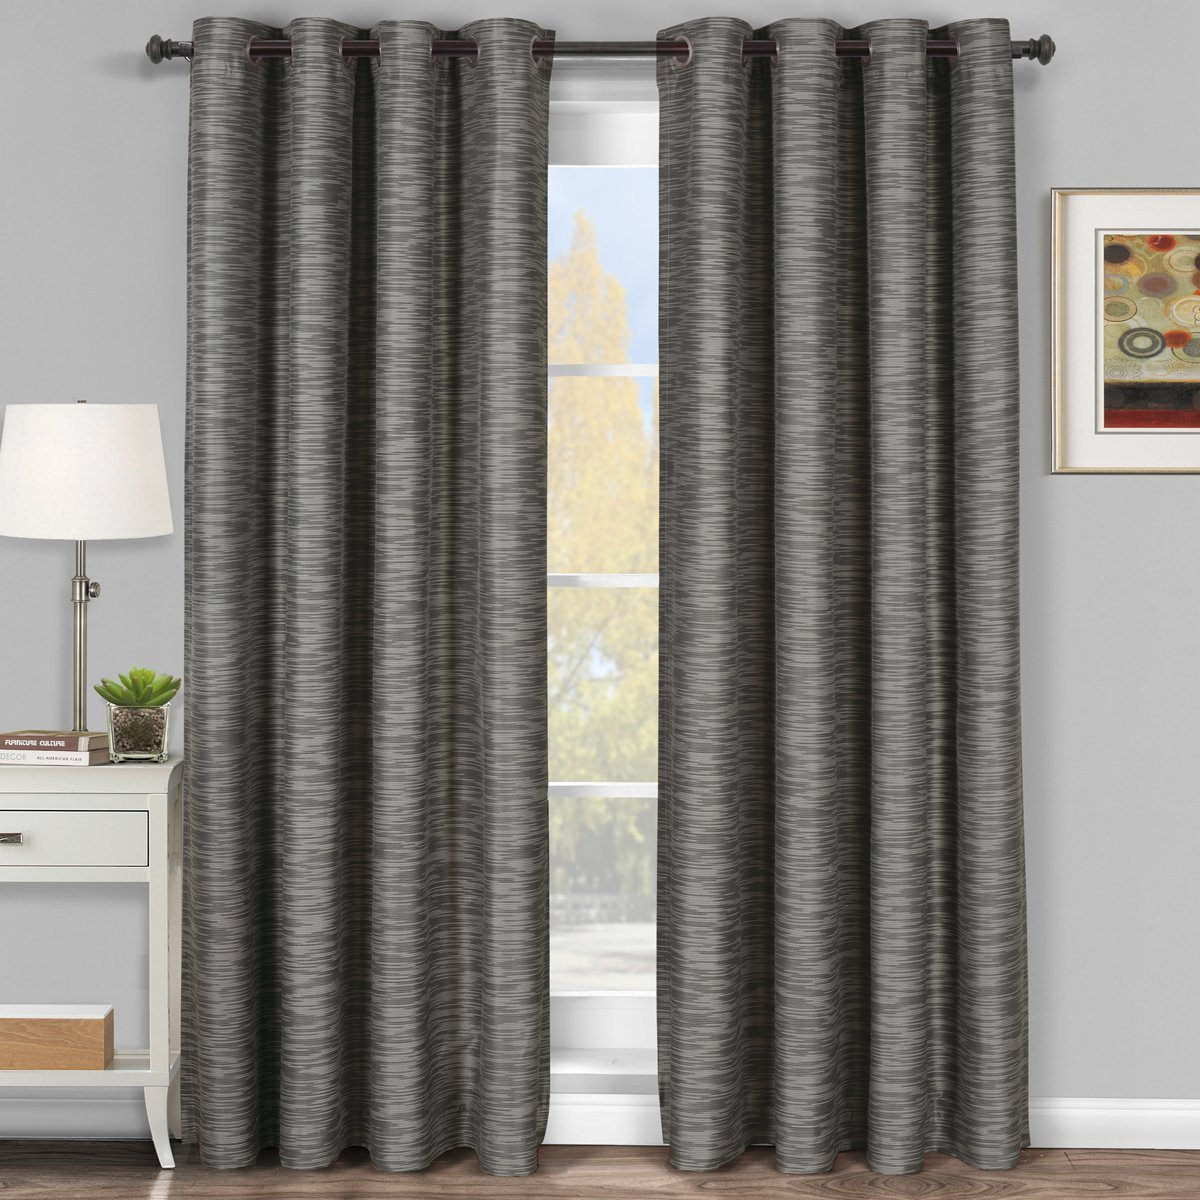 curtains price mist velvet blackout aqua home signature in kitchen hpd half amazon x com drapes curtain vpch dp